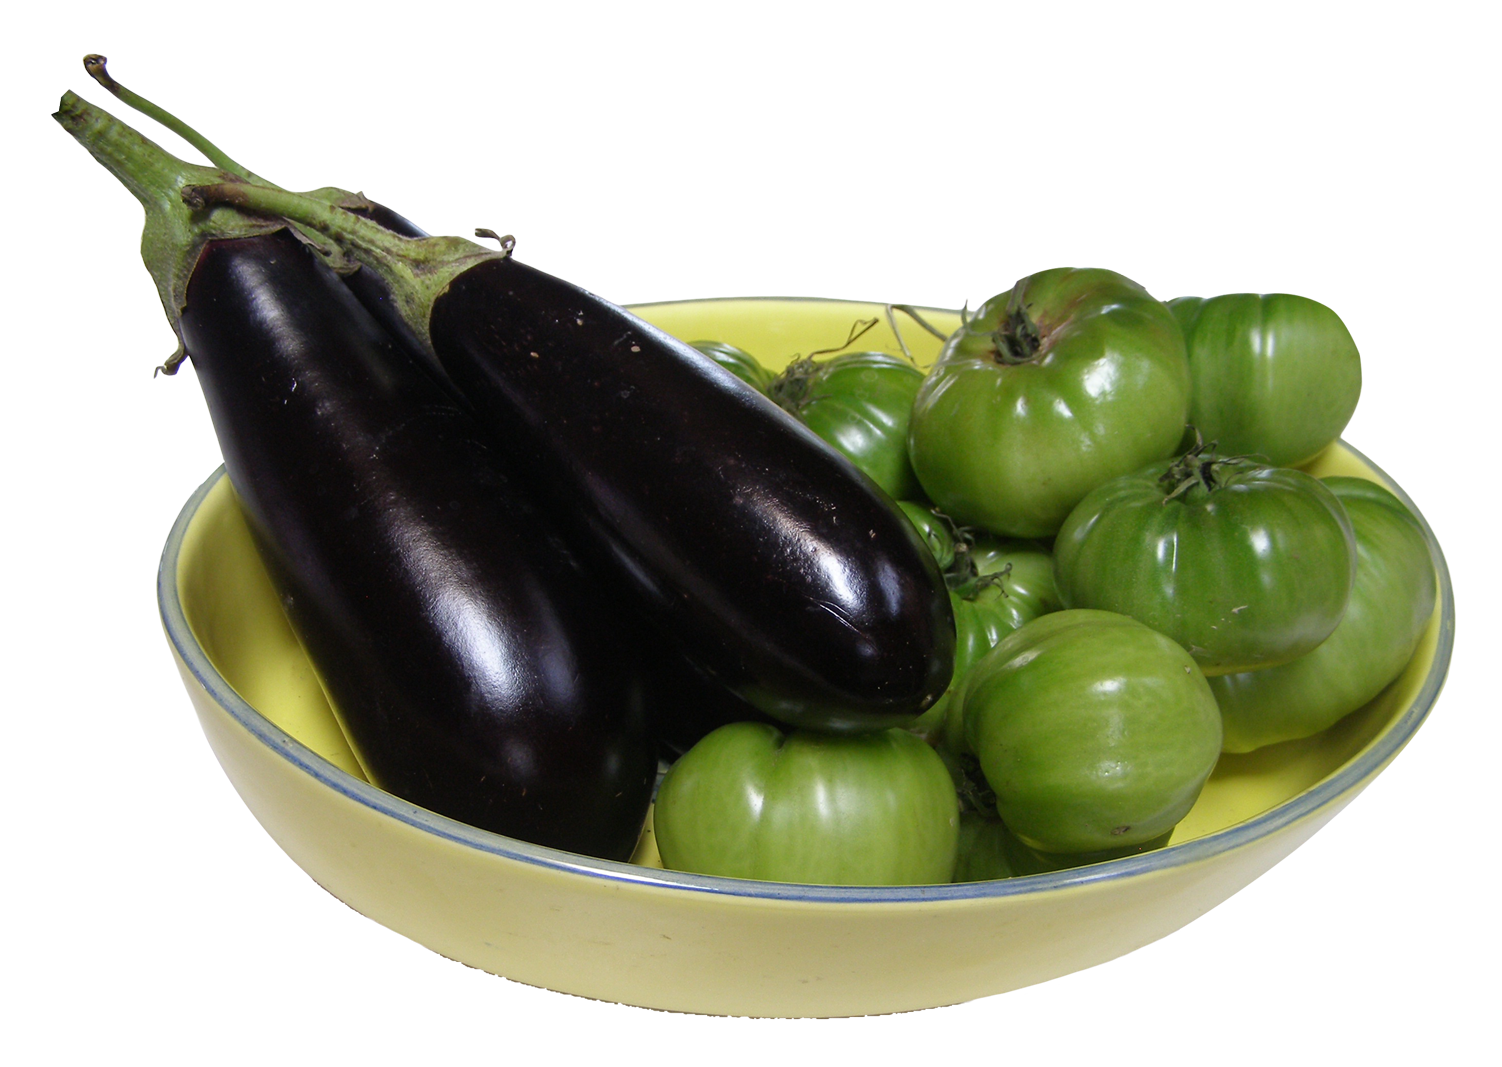 Tomatoes clipart eggplant plant. Png images pngpix tomato